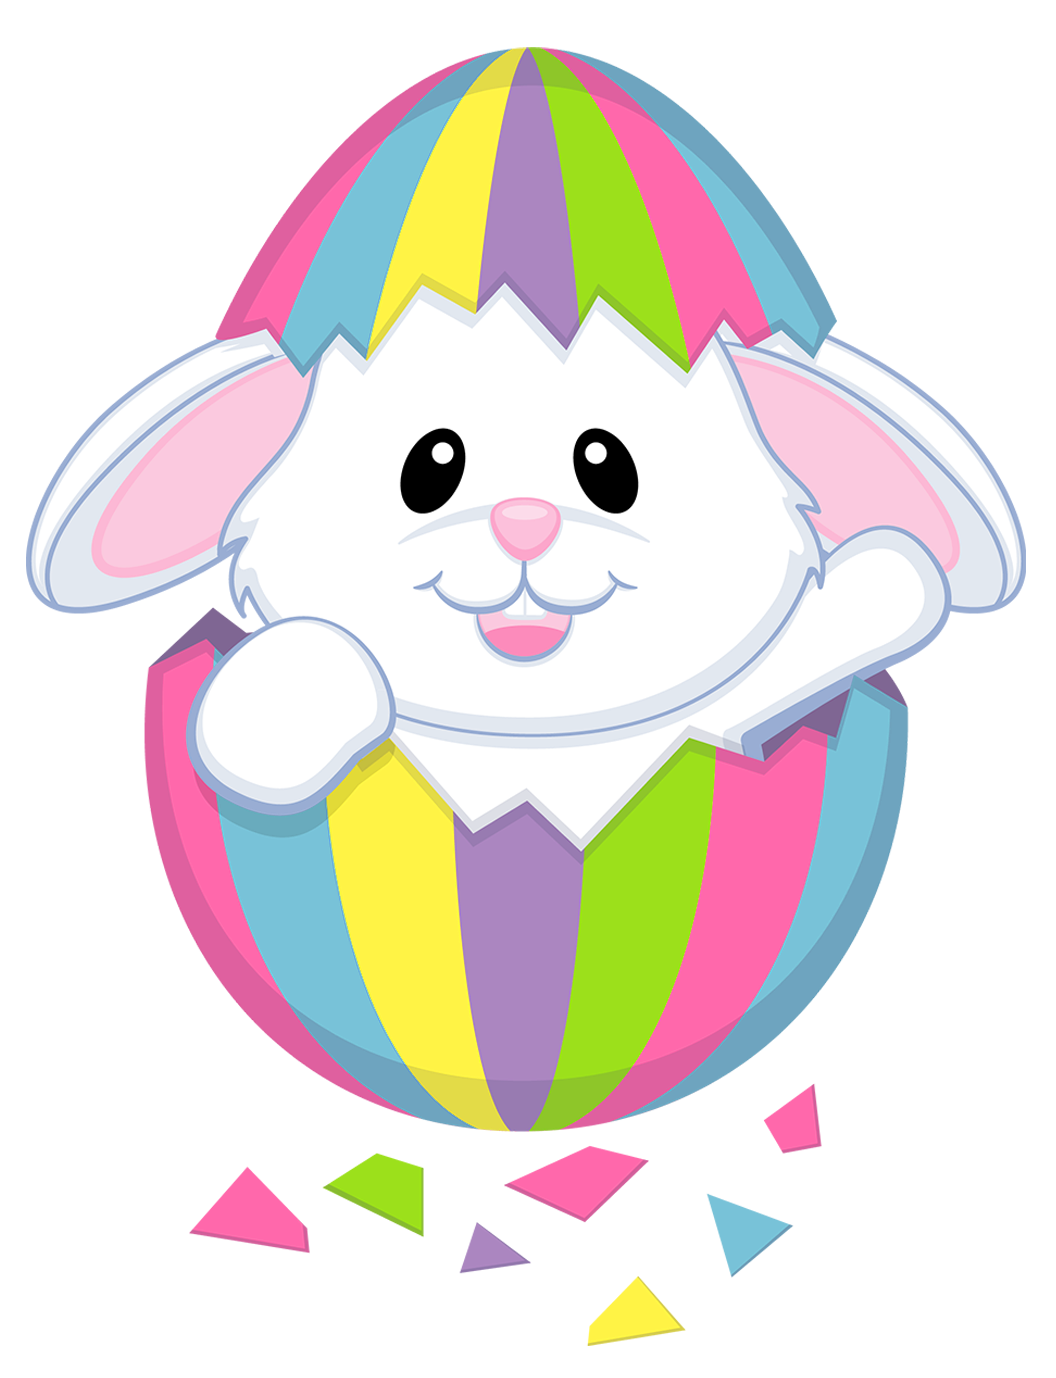 easter bunny clipart best easter eggs pinterest easter bunny rh pinterest com easter bunny clipart animated easter bunny clipart png